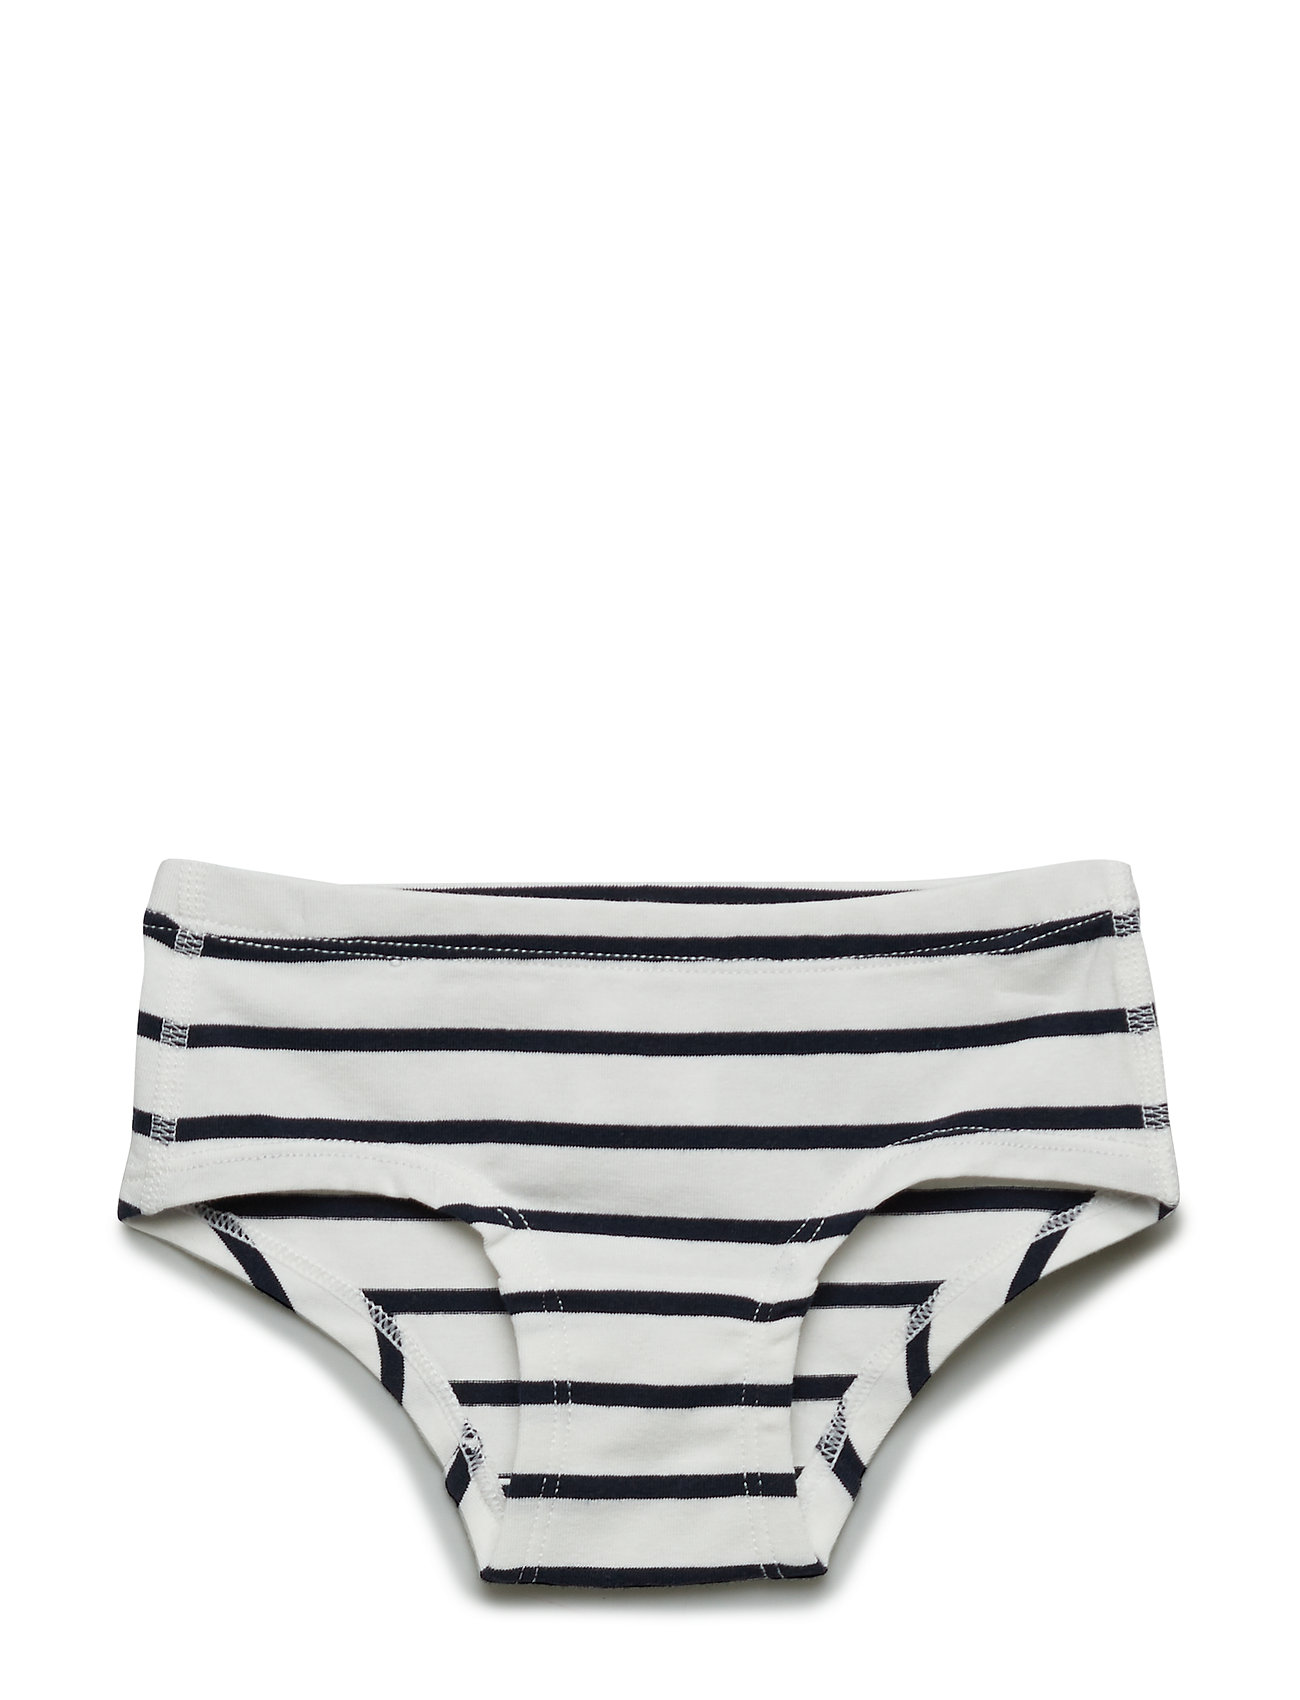 Polarn O. Pyret Hipster Striped Preschool